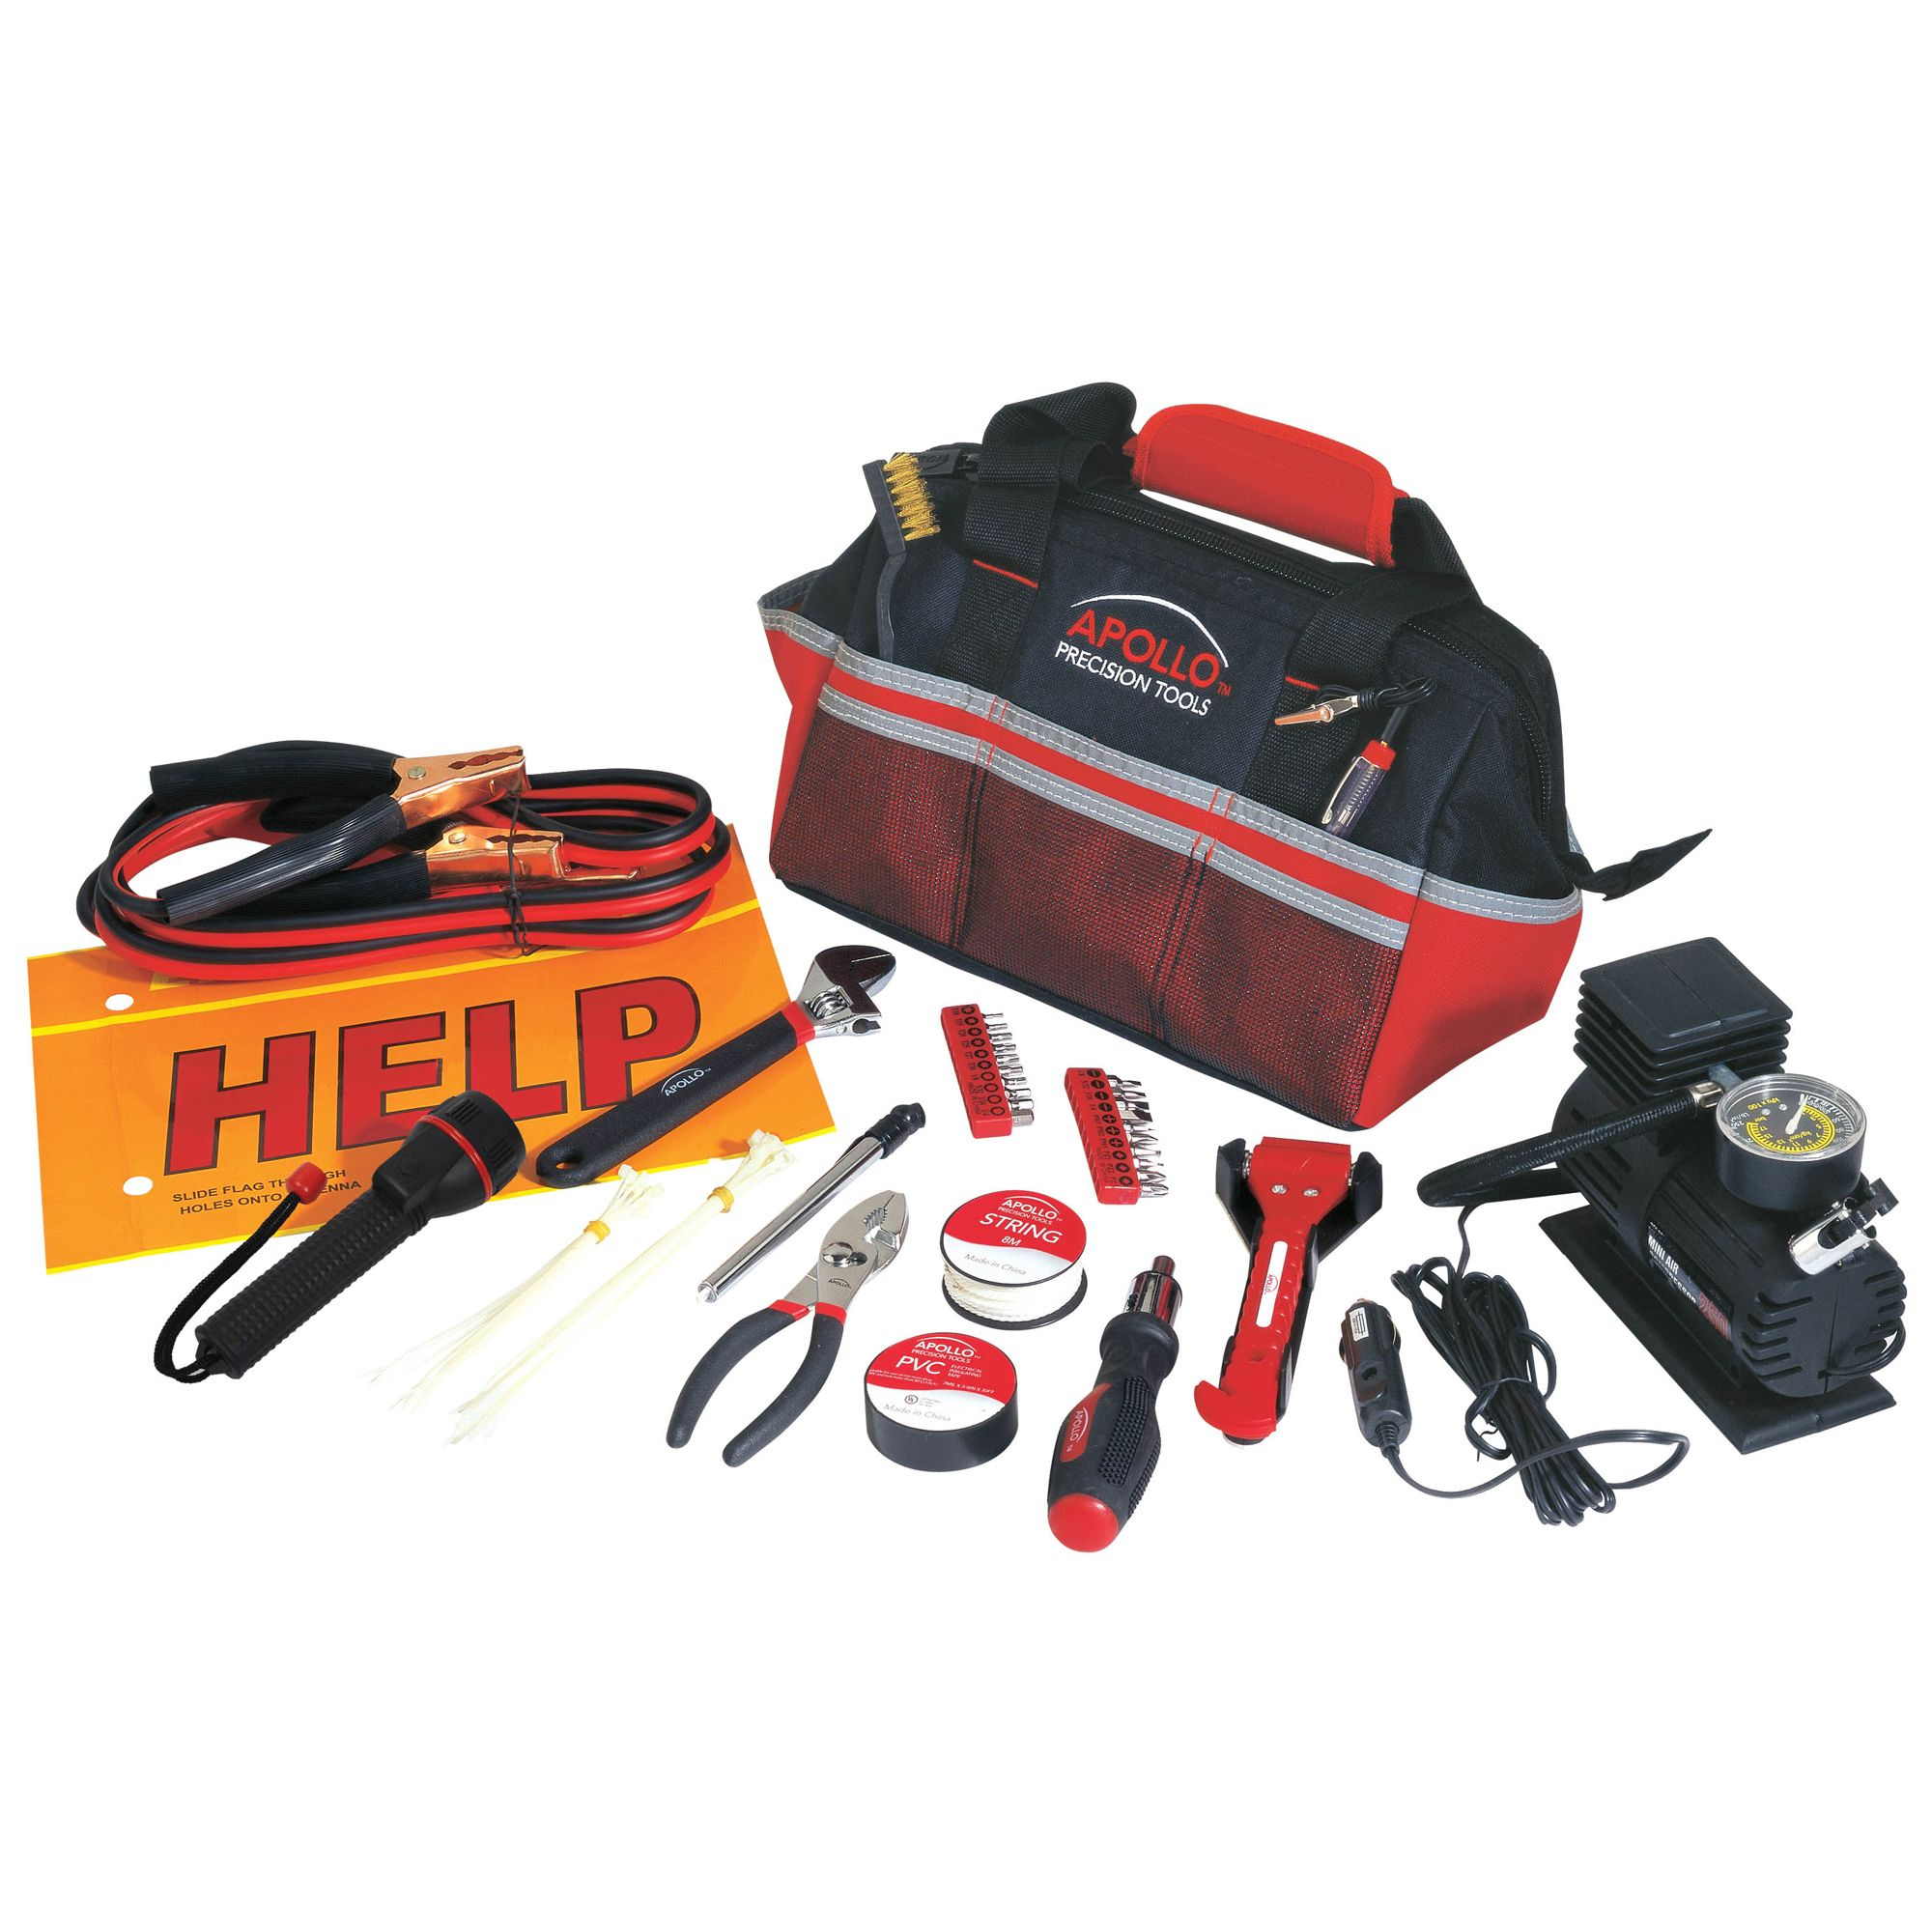 Apollo  53 Emergency Roadside Tool Kit